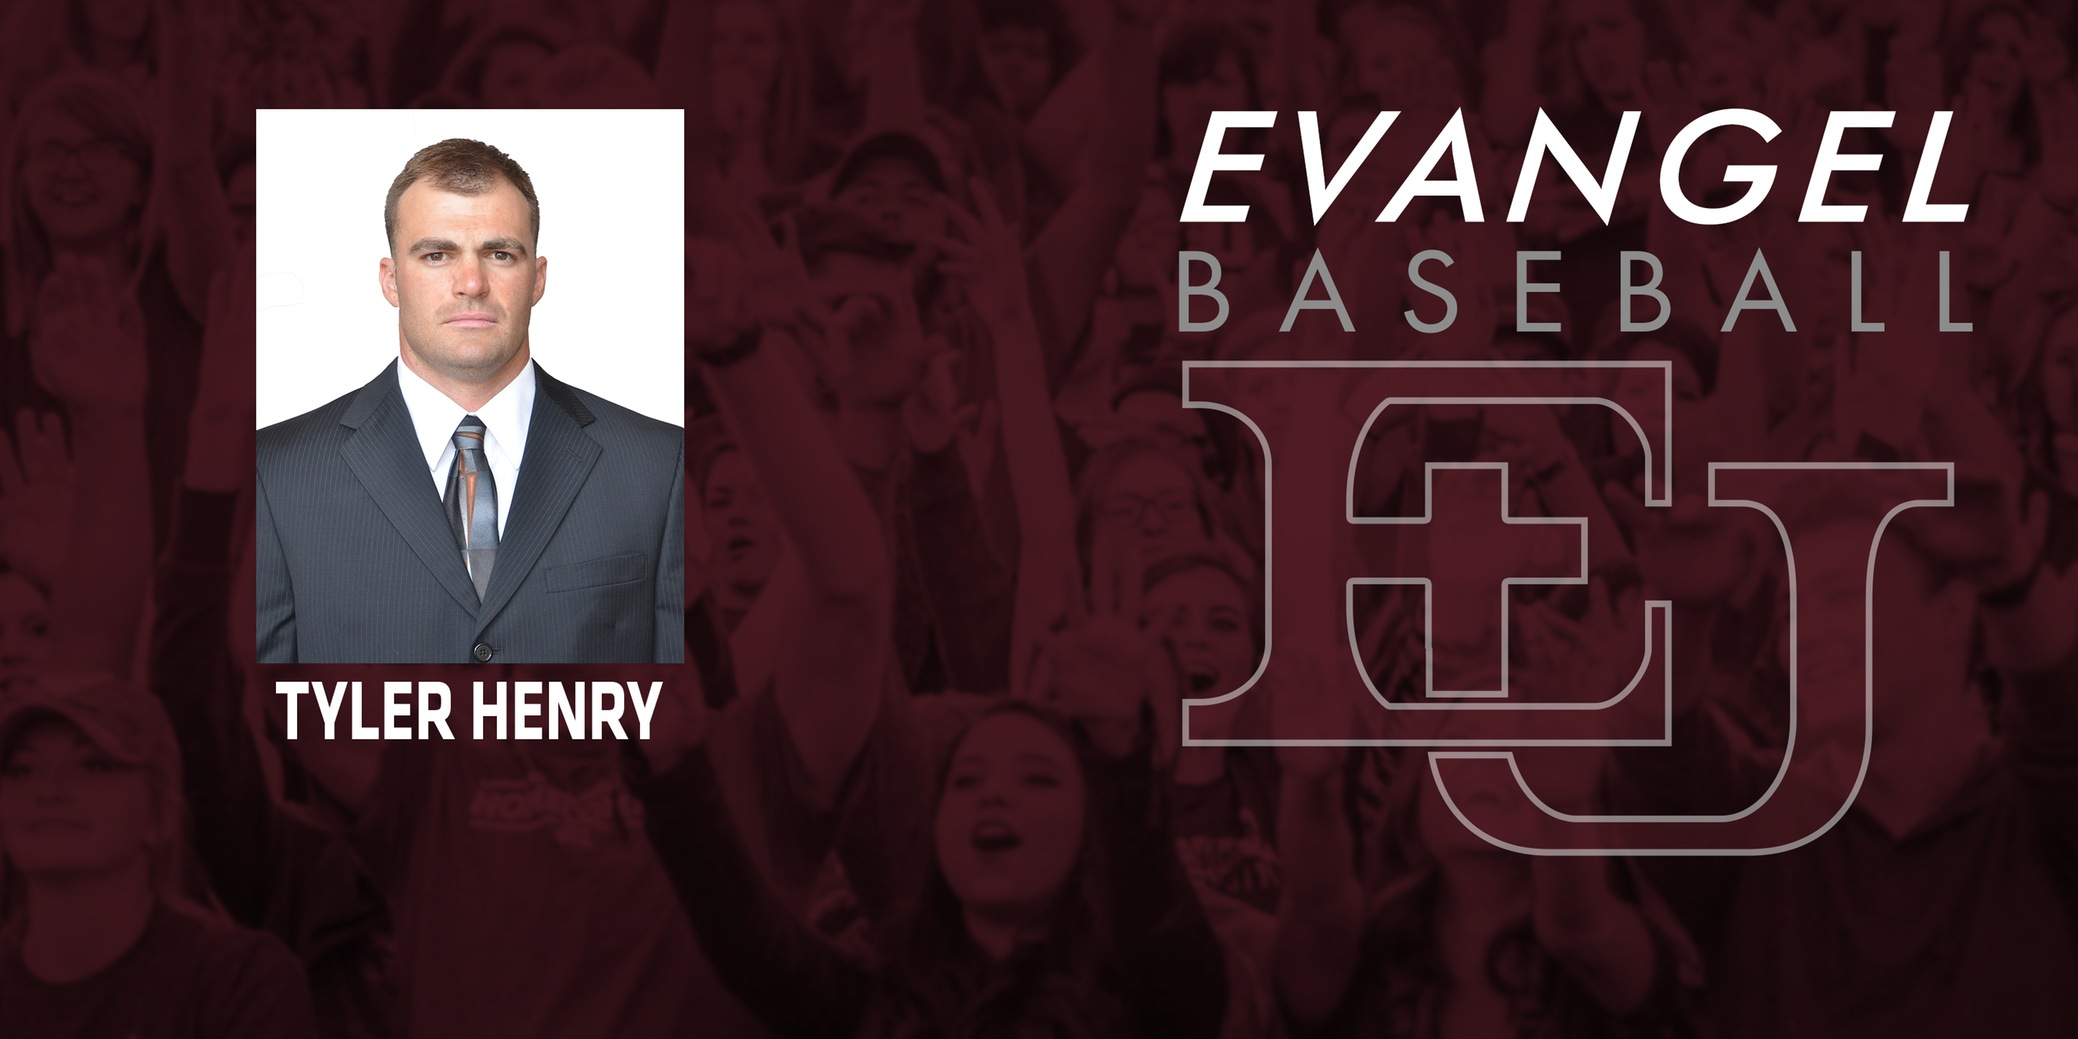 Tyler Henry Named Evangel Baseball Assistant